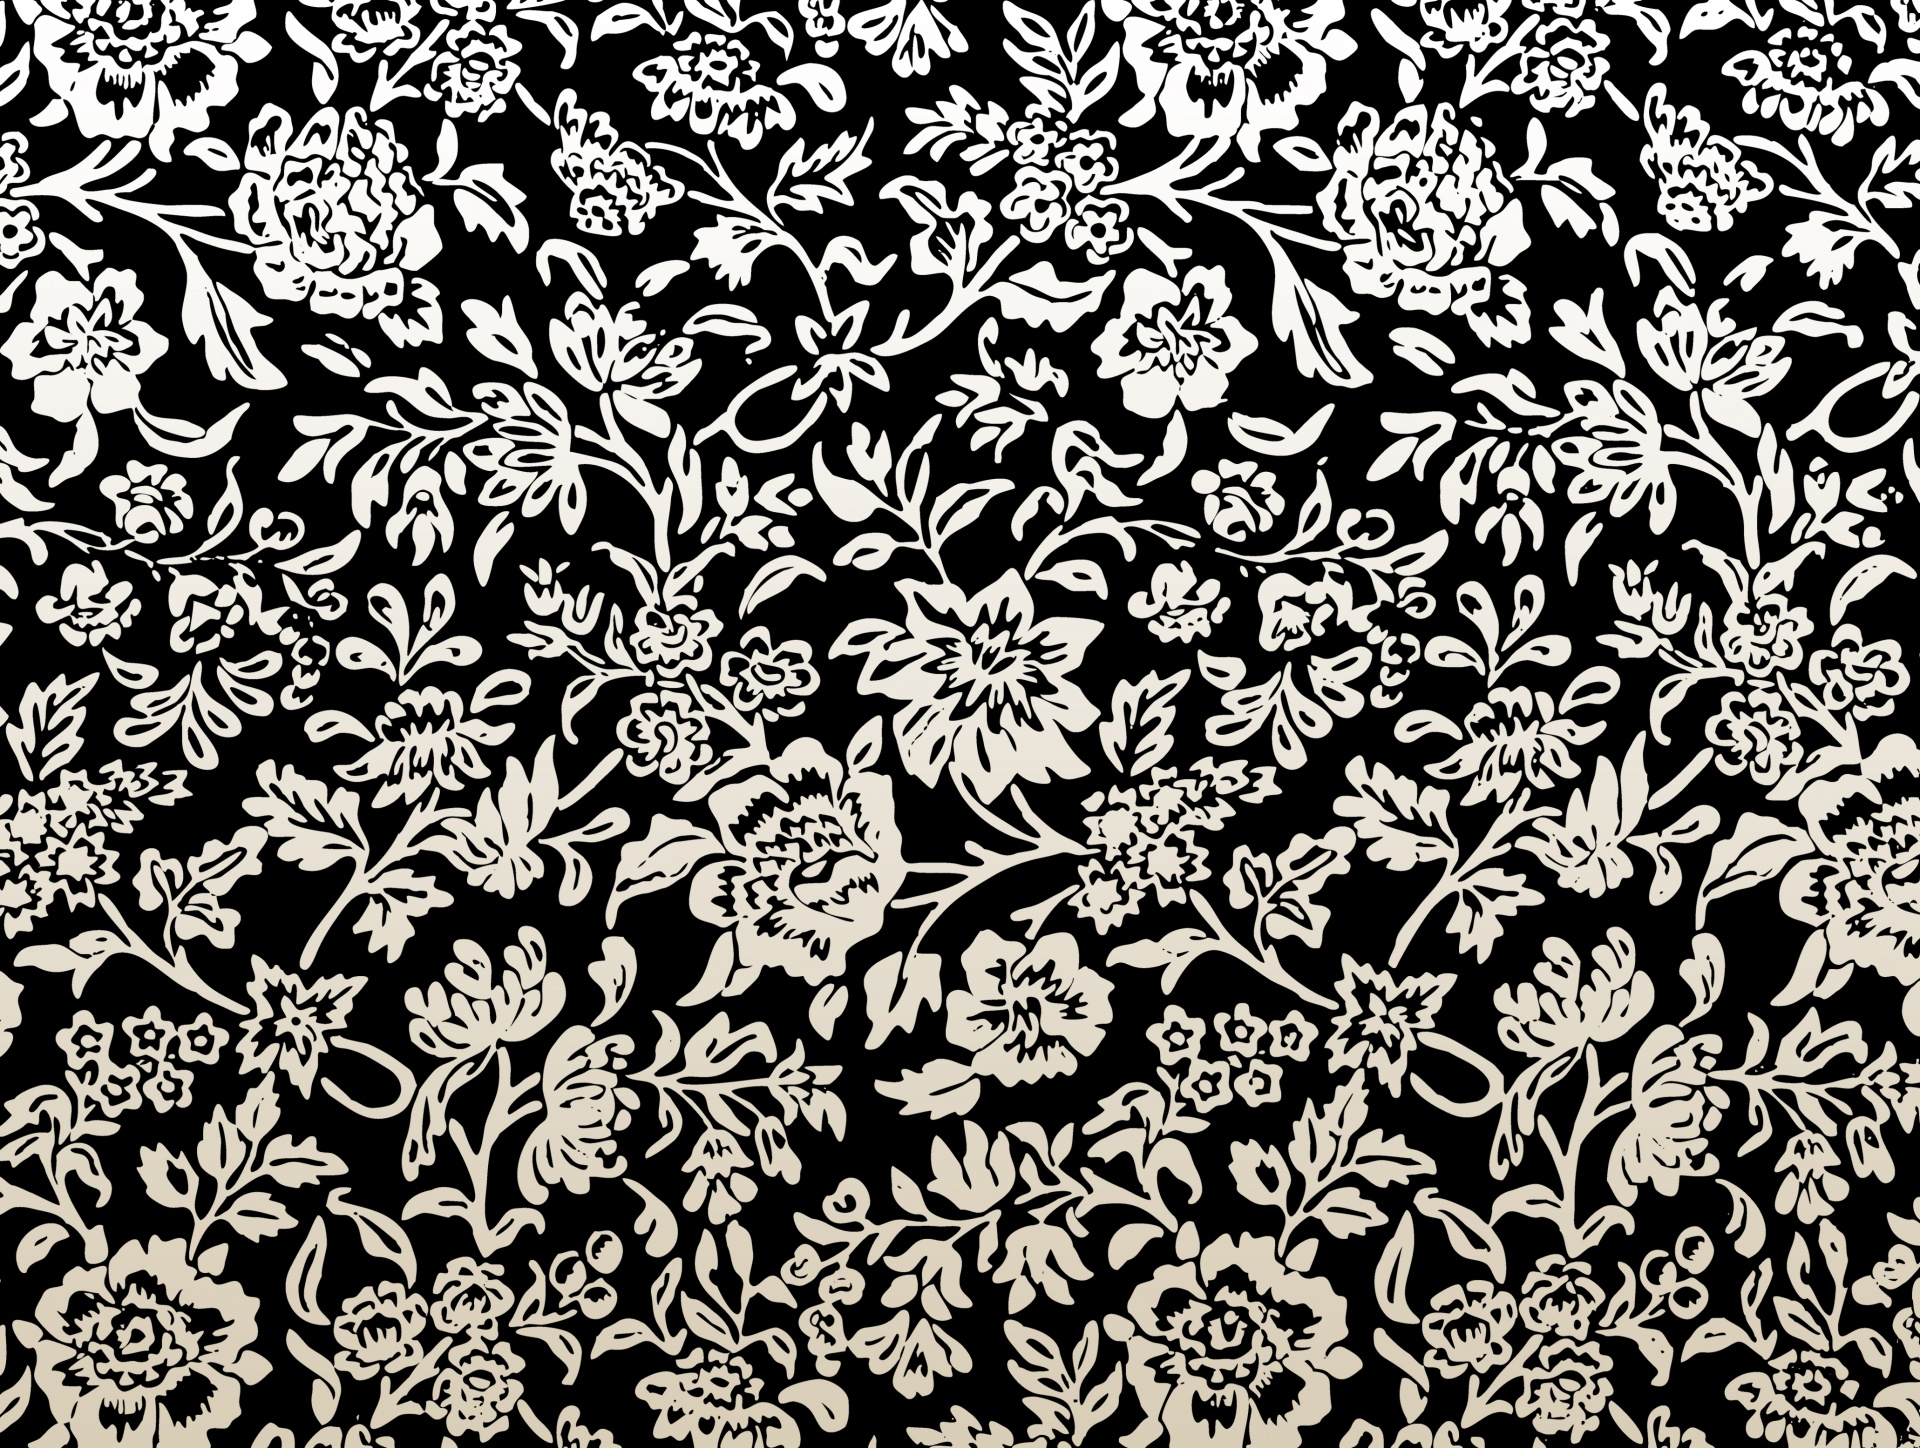 Floral Background Black White Wallpaper Free Image From Needpix Com